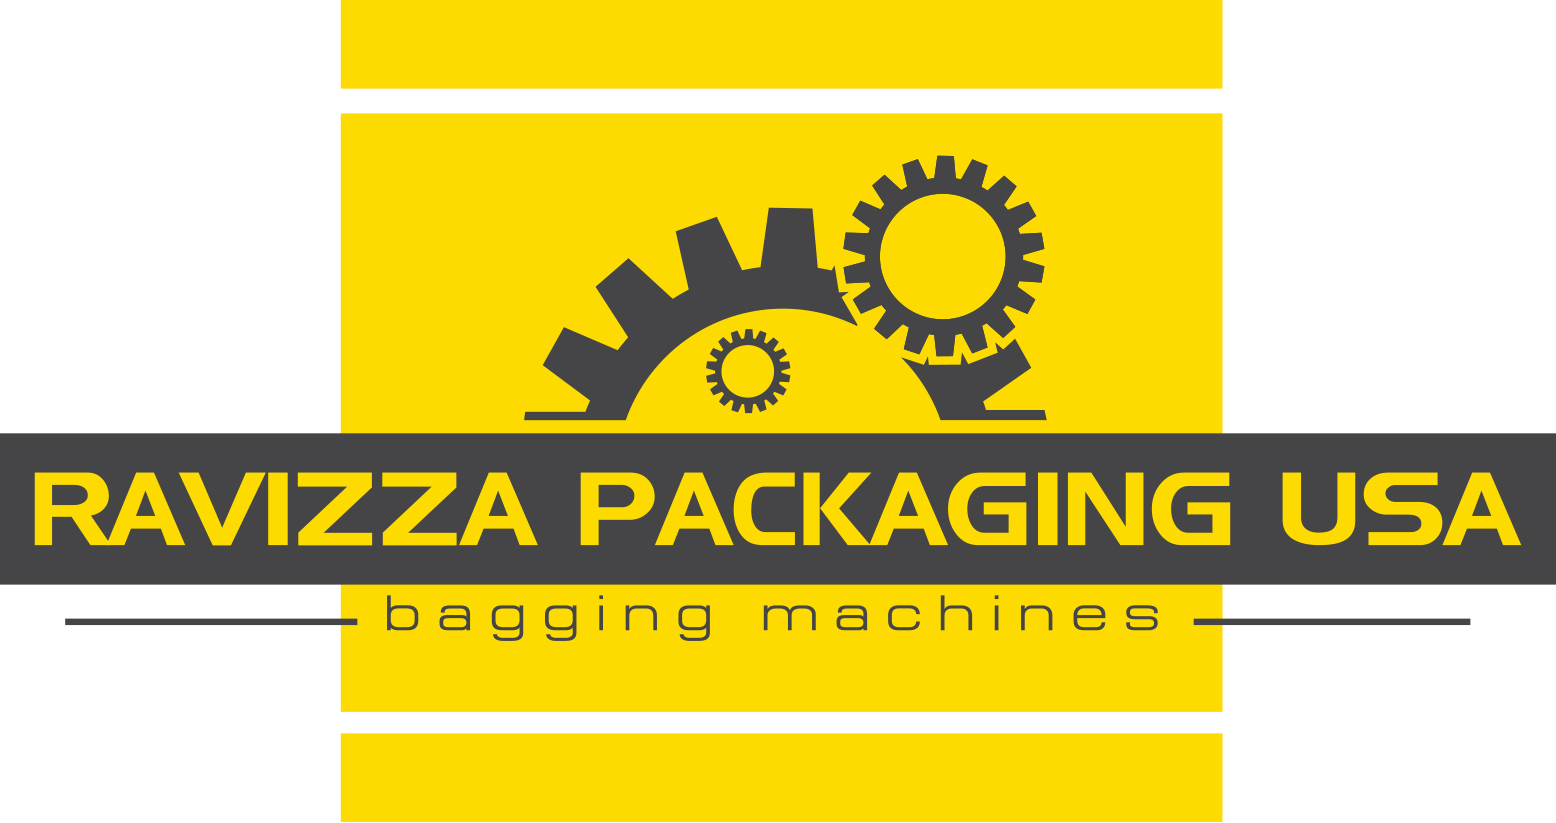 Ravizza Packaaging USA